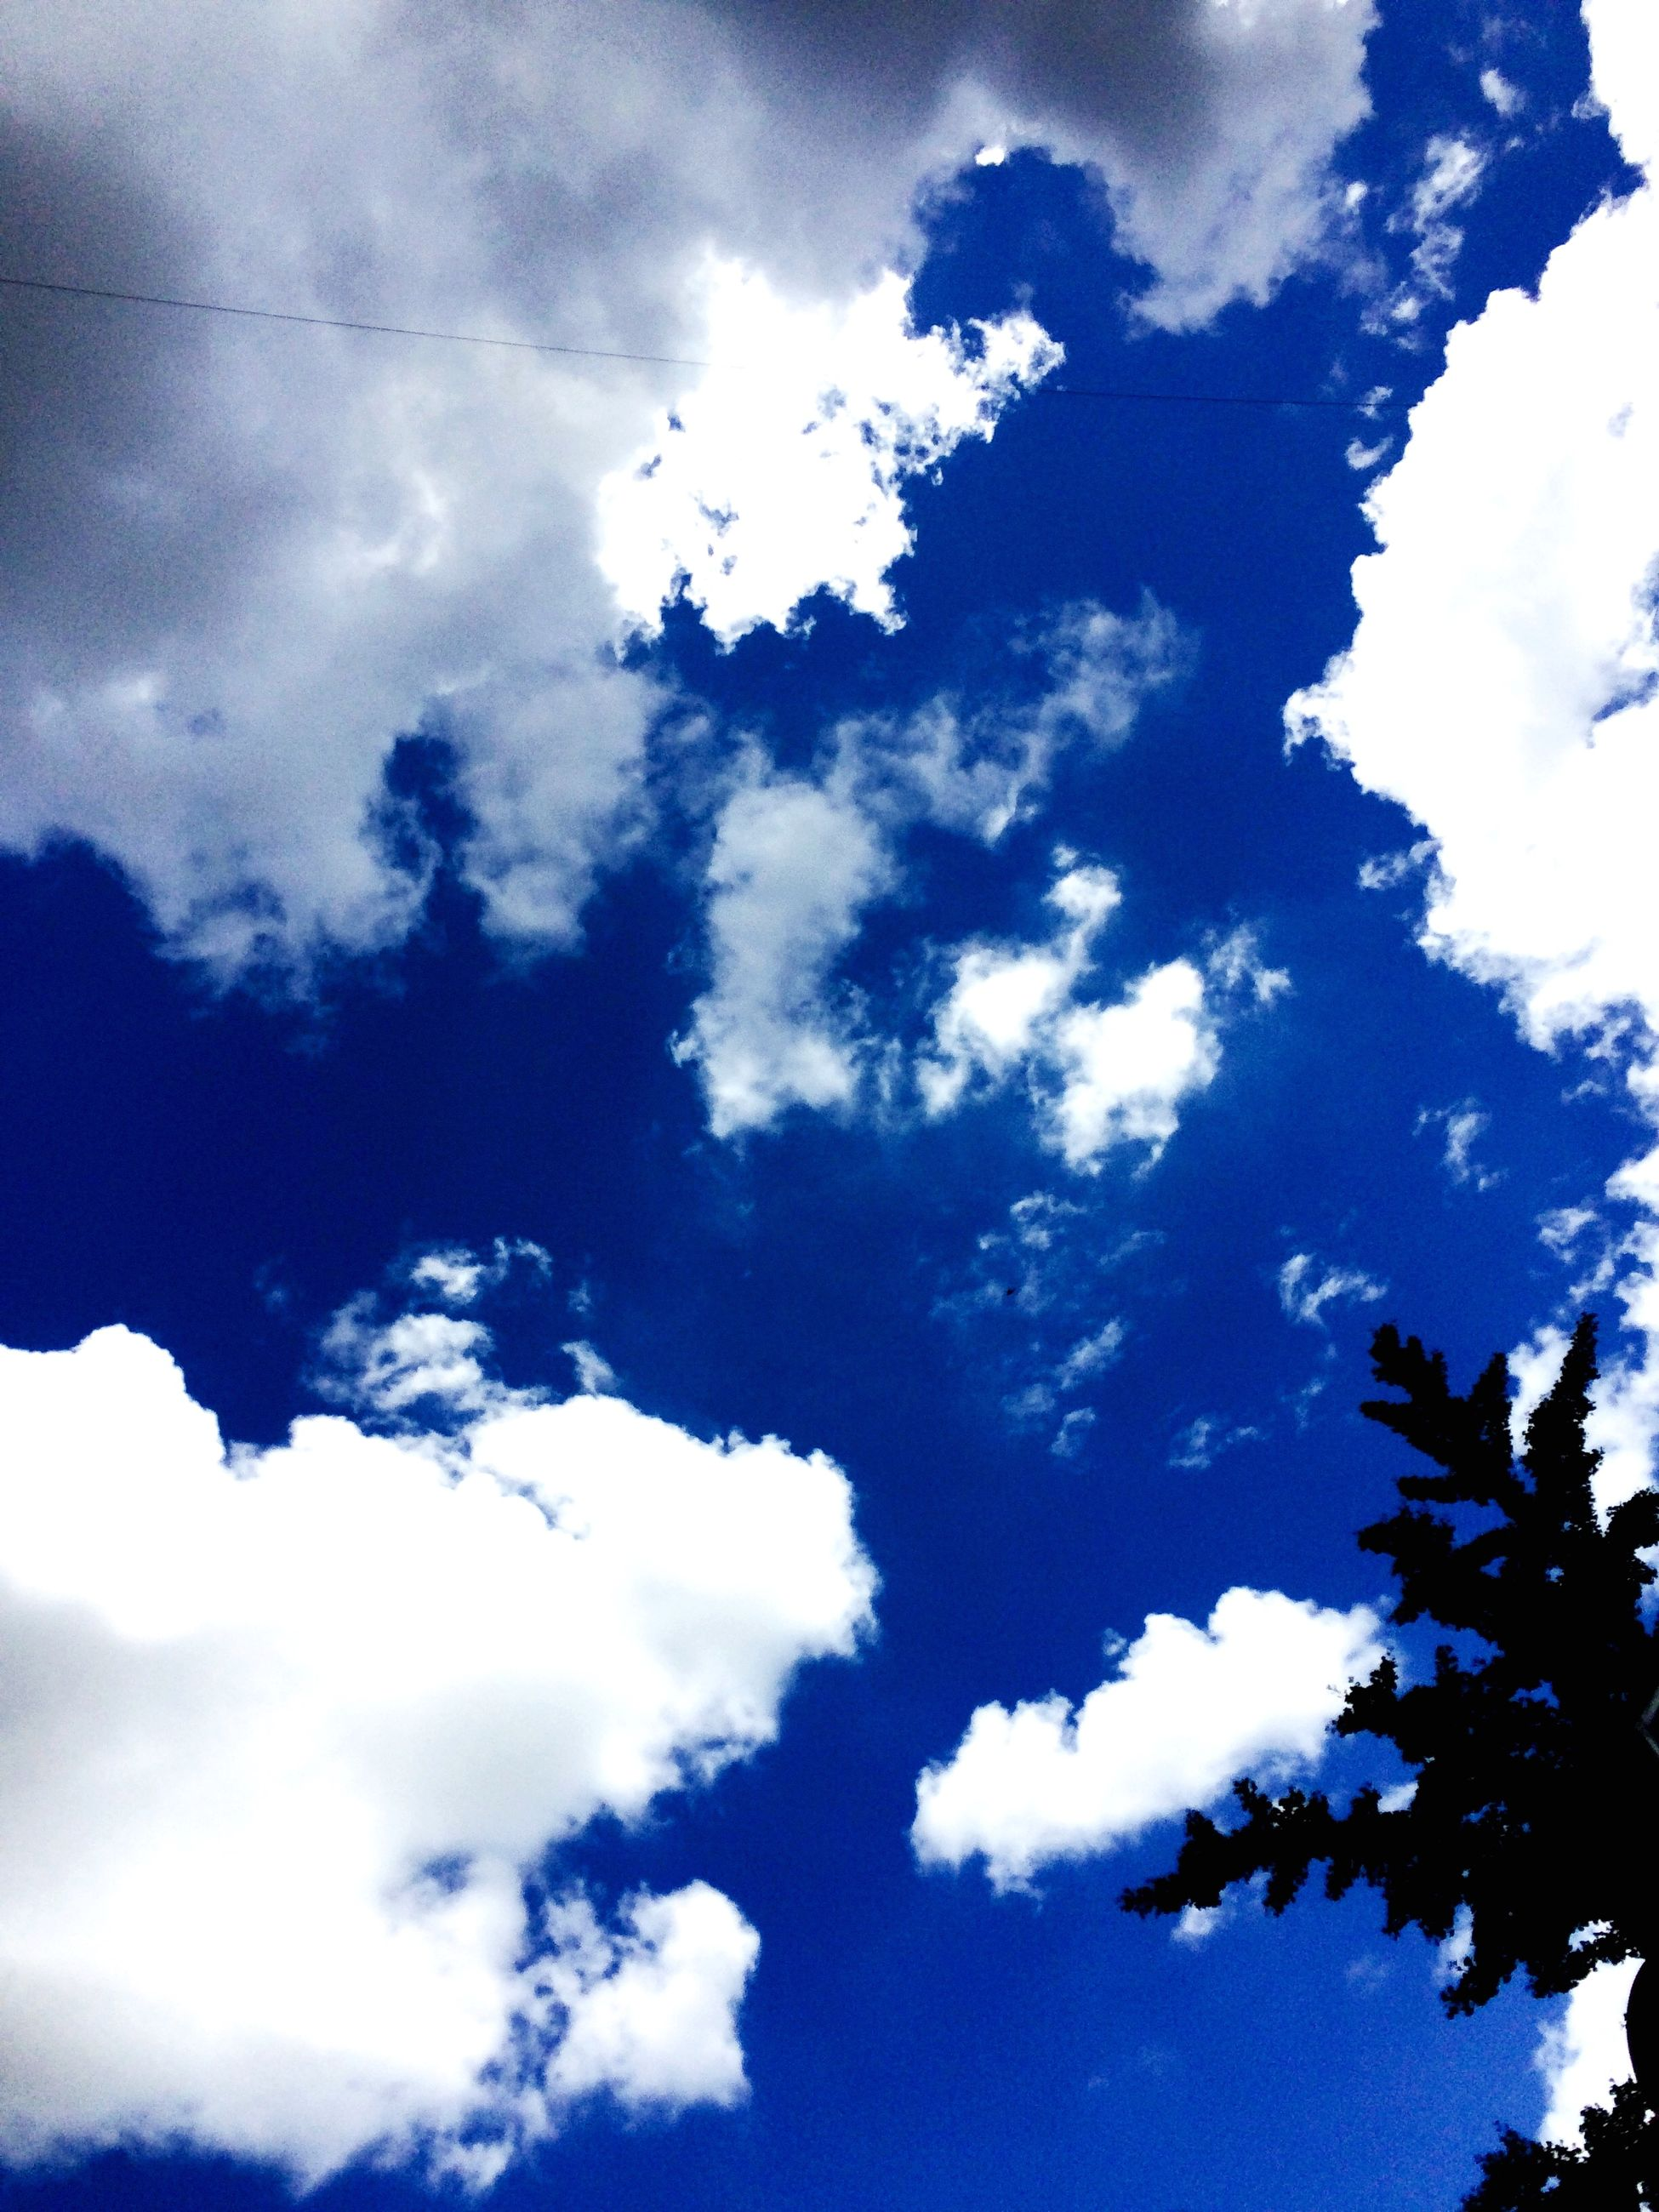 low angle view, sky, cloud - sky, cloudy, blue, cloud, beauty in nature, nature, tranquility, scenics, cloudscape, day, tranquil scene, outdoors, no people, tree, sky only, white color, high section, idyllic